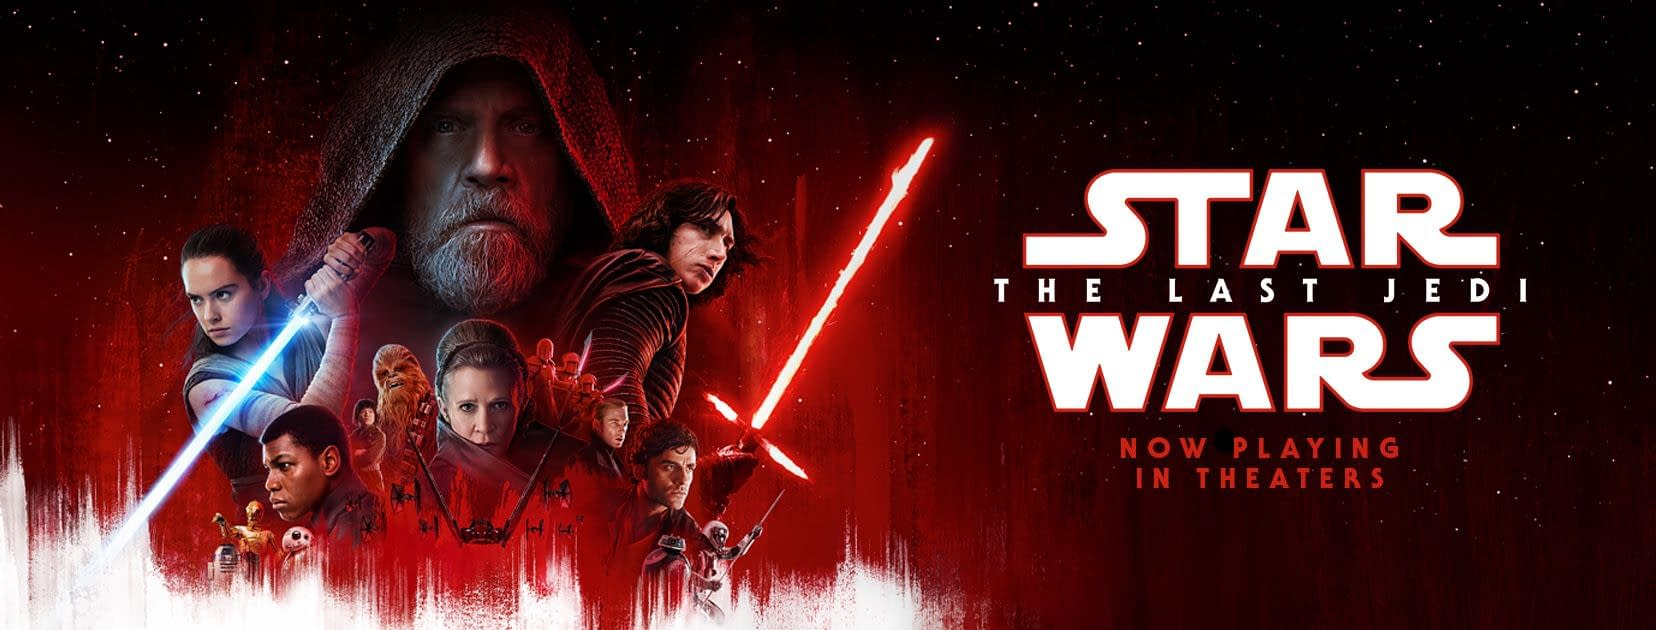 Facebook User Claims to Have Manipulated the Rotten Tomatoes Audience Score for Star Wars: The Last Jedi